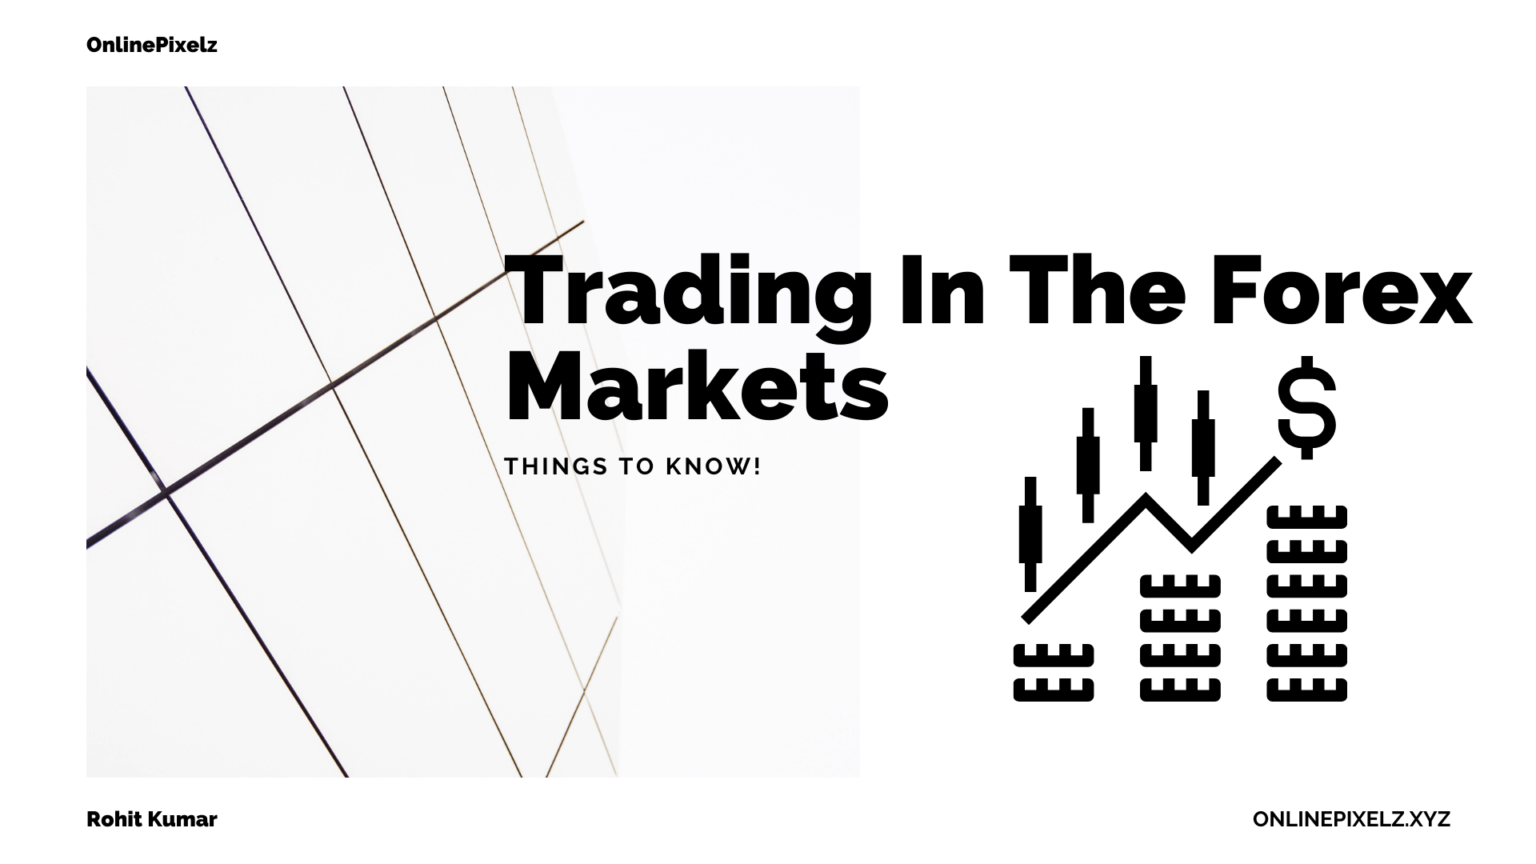 Things To Know When Trading In The Forex Markets